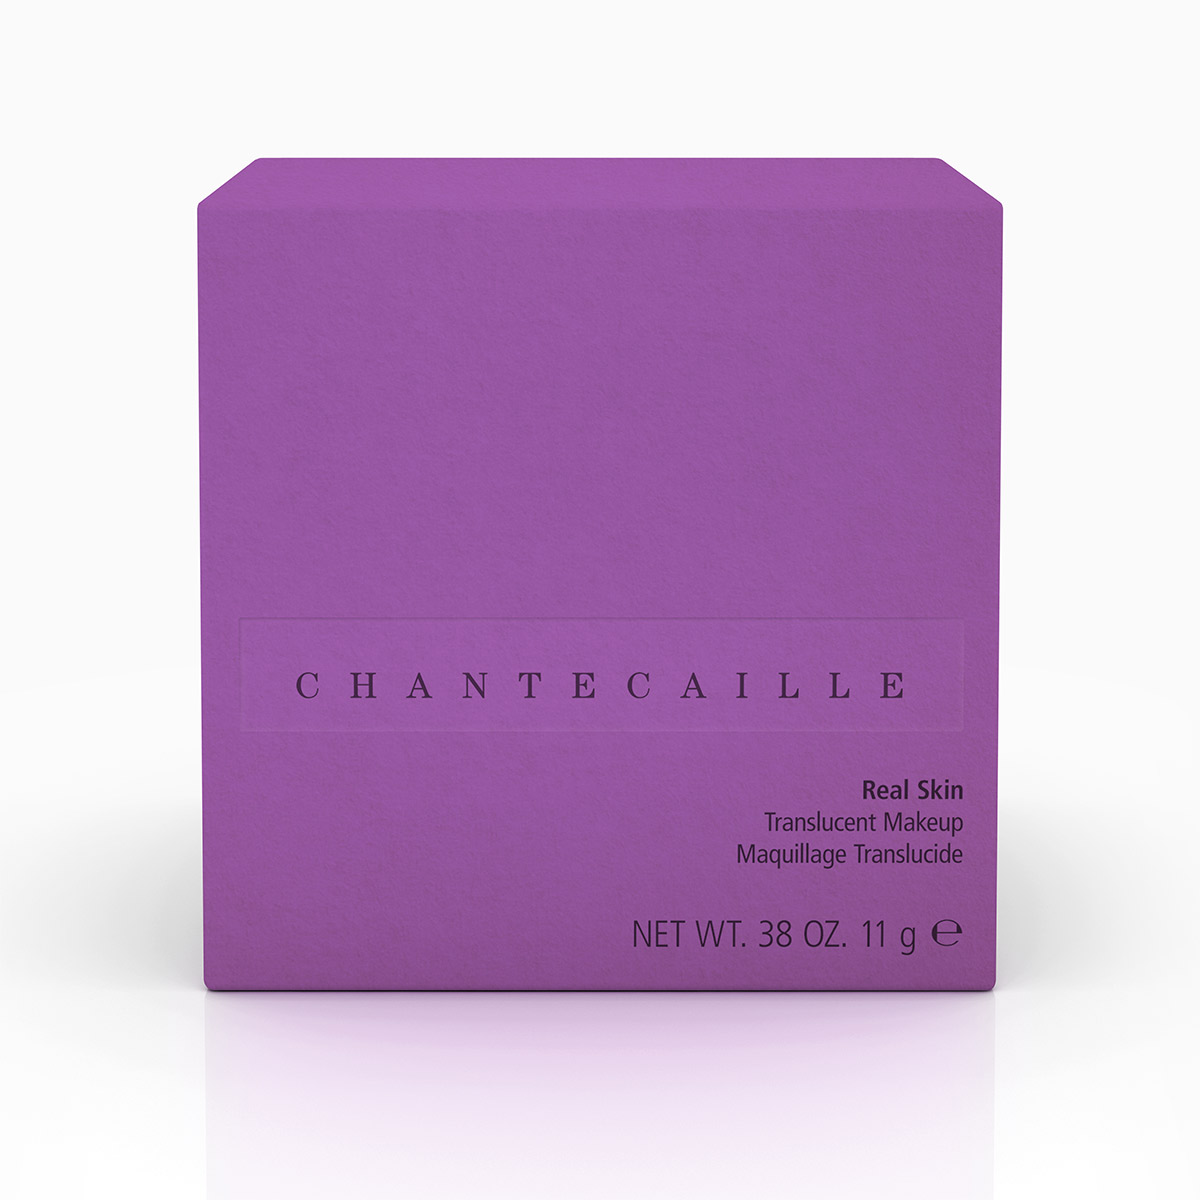 Chantecaille Cosmetics Secondary Packaging